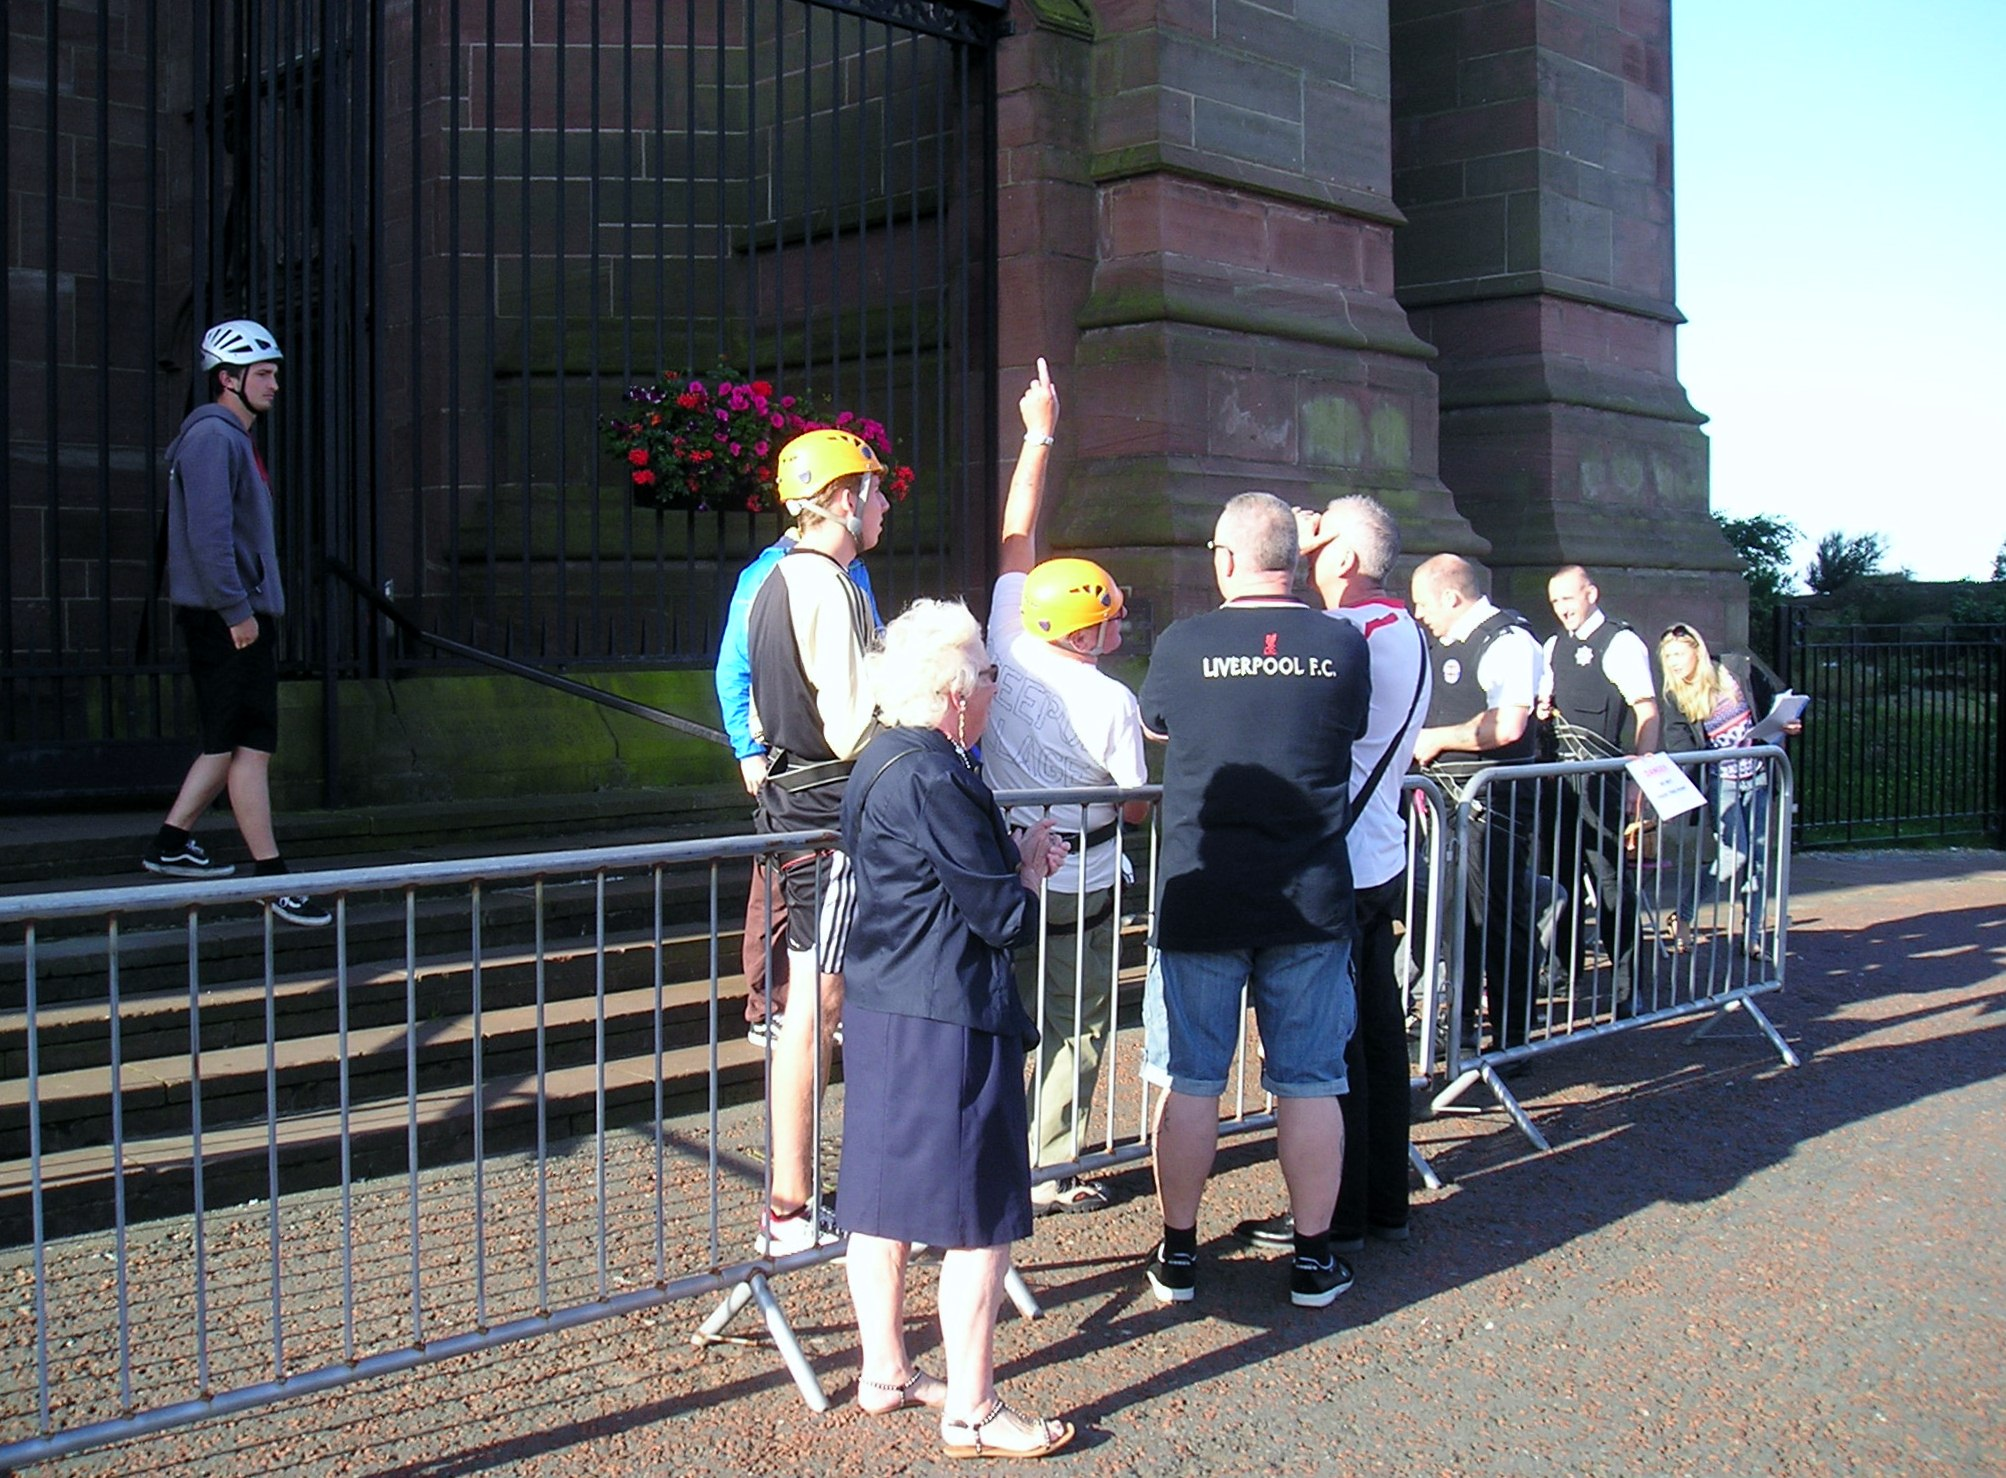 Ruby Porter waits at the bottom to greet her husband and grandson after their abseil down Liverpool Cathedral, Aug 2014 to fundraise for Sreepur charity